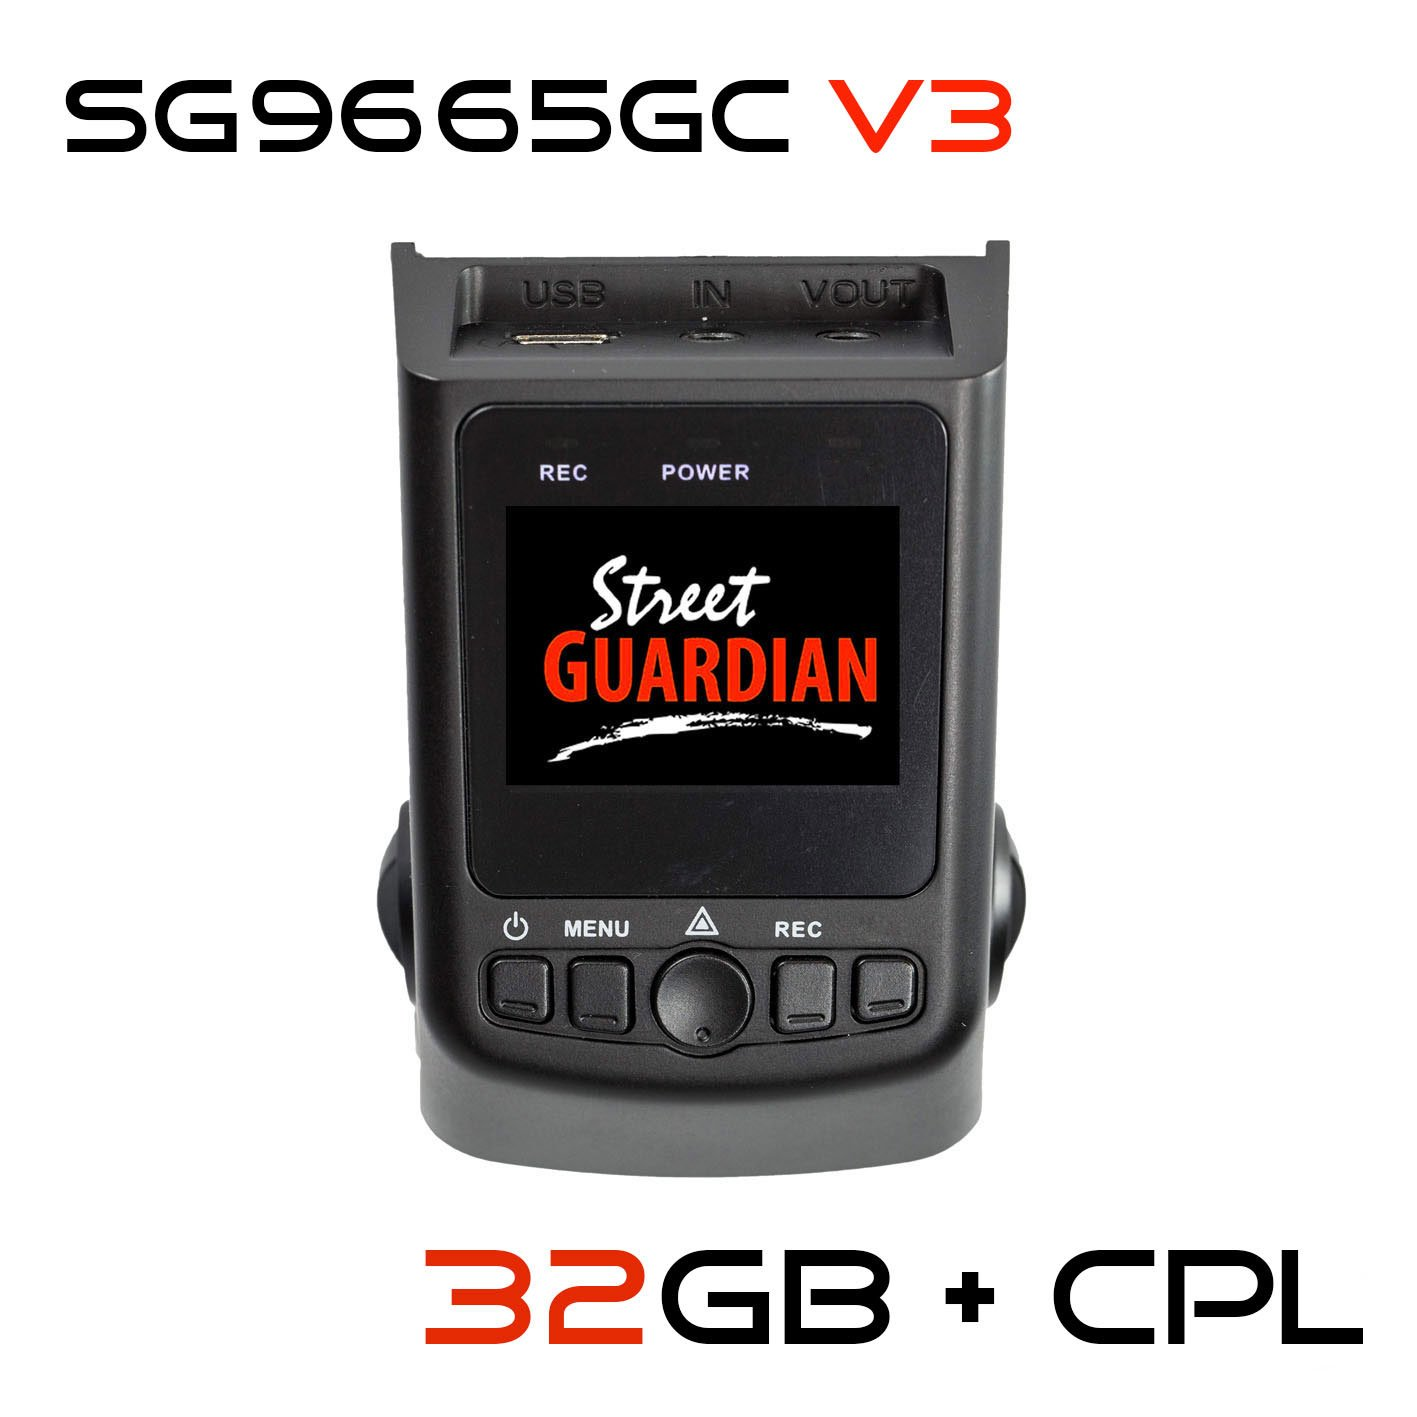 Street Guardian SG9665GC v3 2017 edition + 32GB microSD Card + CPL + USB/OTG Android Card Reader + GPS, Supercapacitor Sony Exmor IMX322 WDR CMOS Sensor DashCam 1080P 30FPS (Best Of - DashCamTalk)